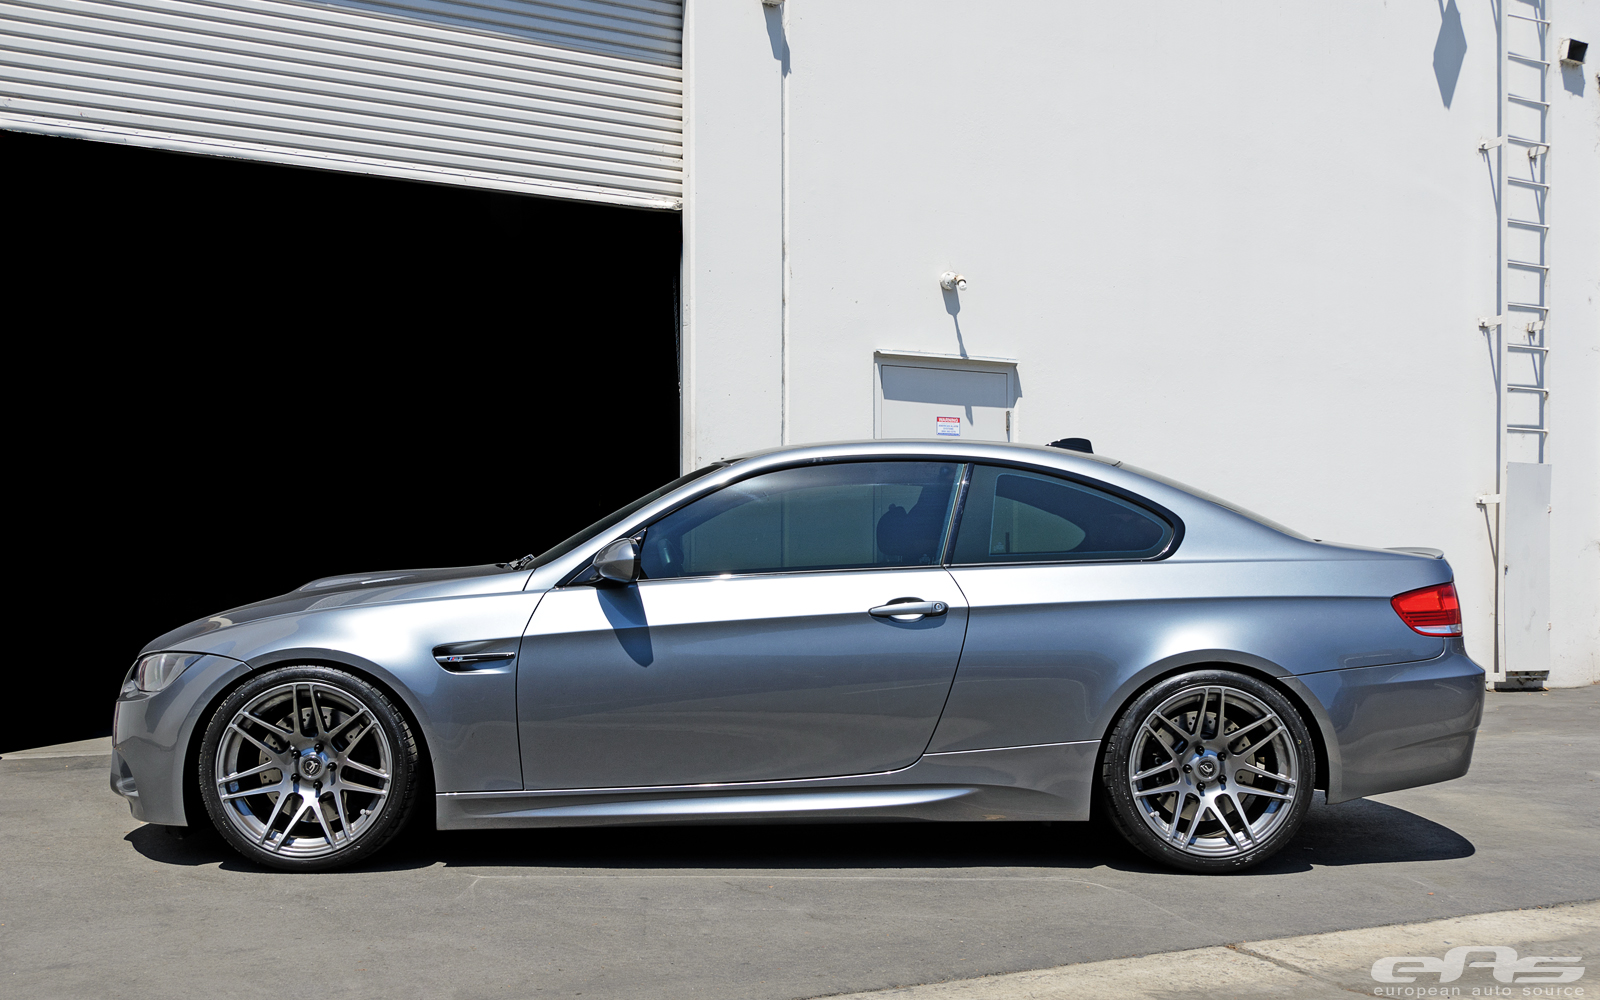 Space Gray Bmw M3 On Concave Wheels Is An Apparition